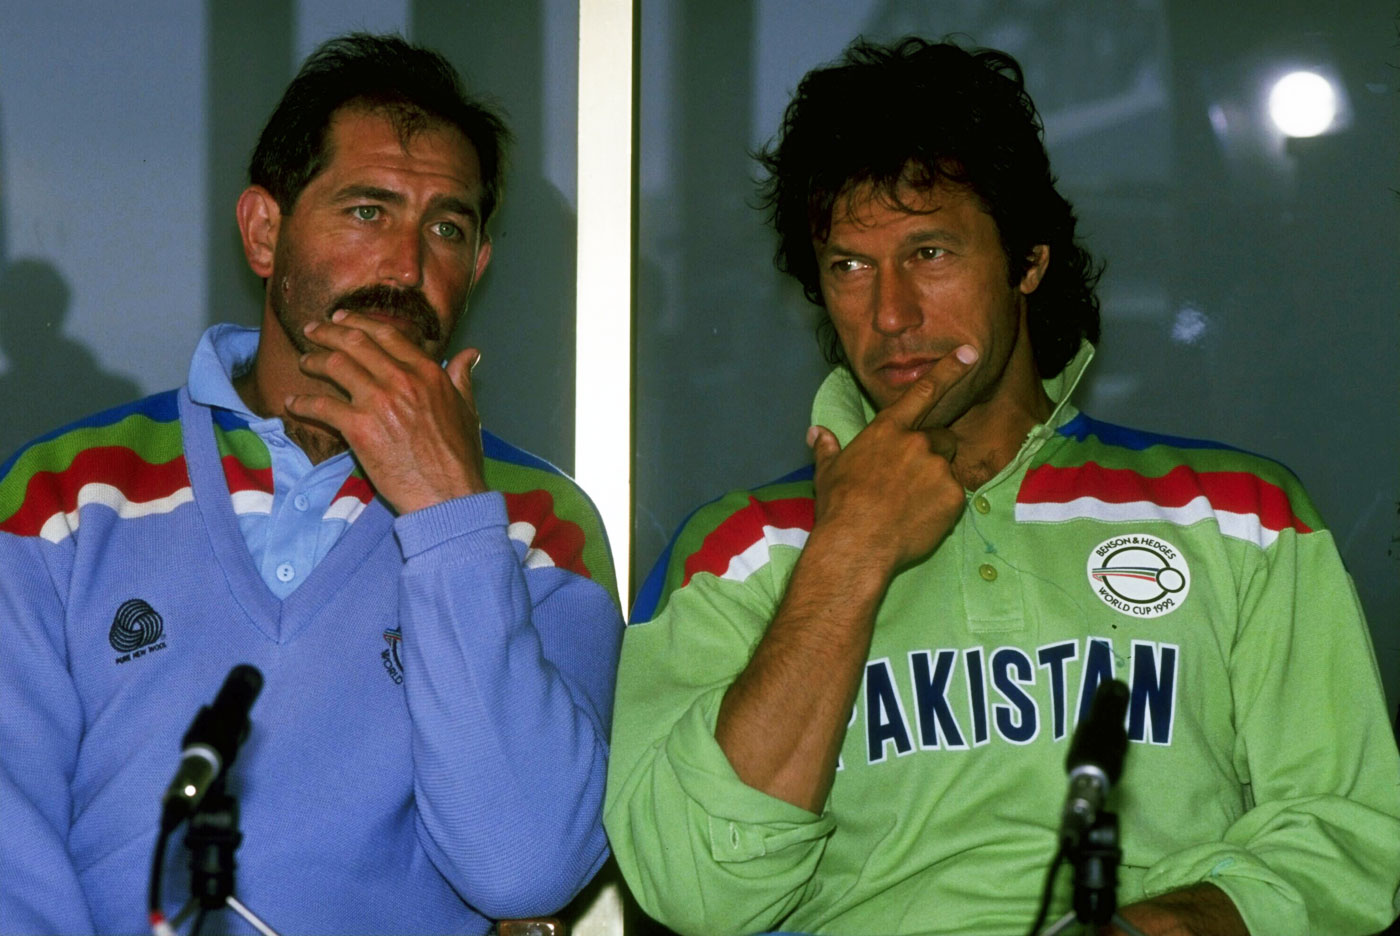 Life begins at 39: rival captains Graham Gooch and Imran Khan ahead of the final